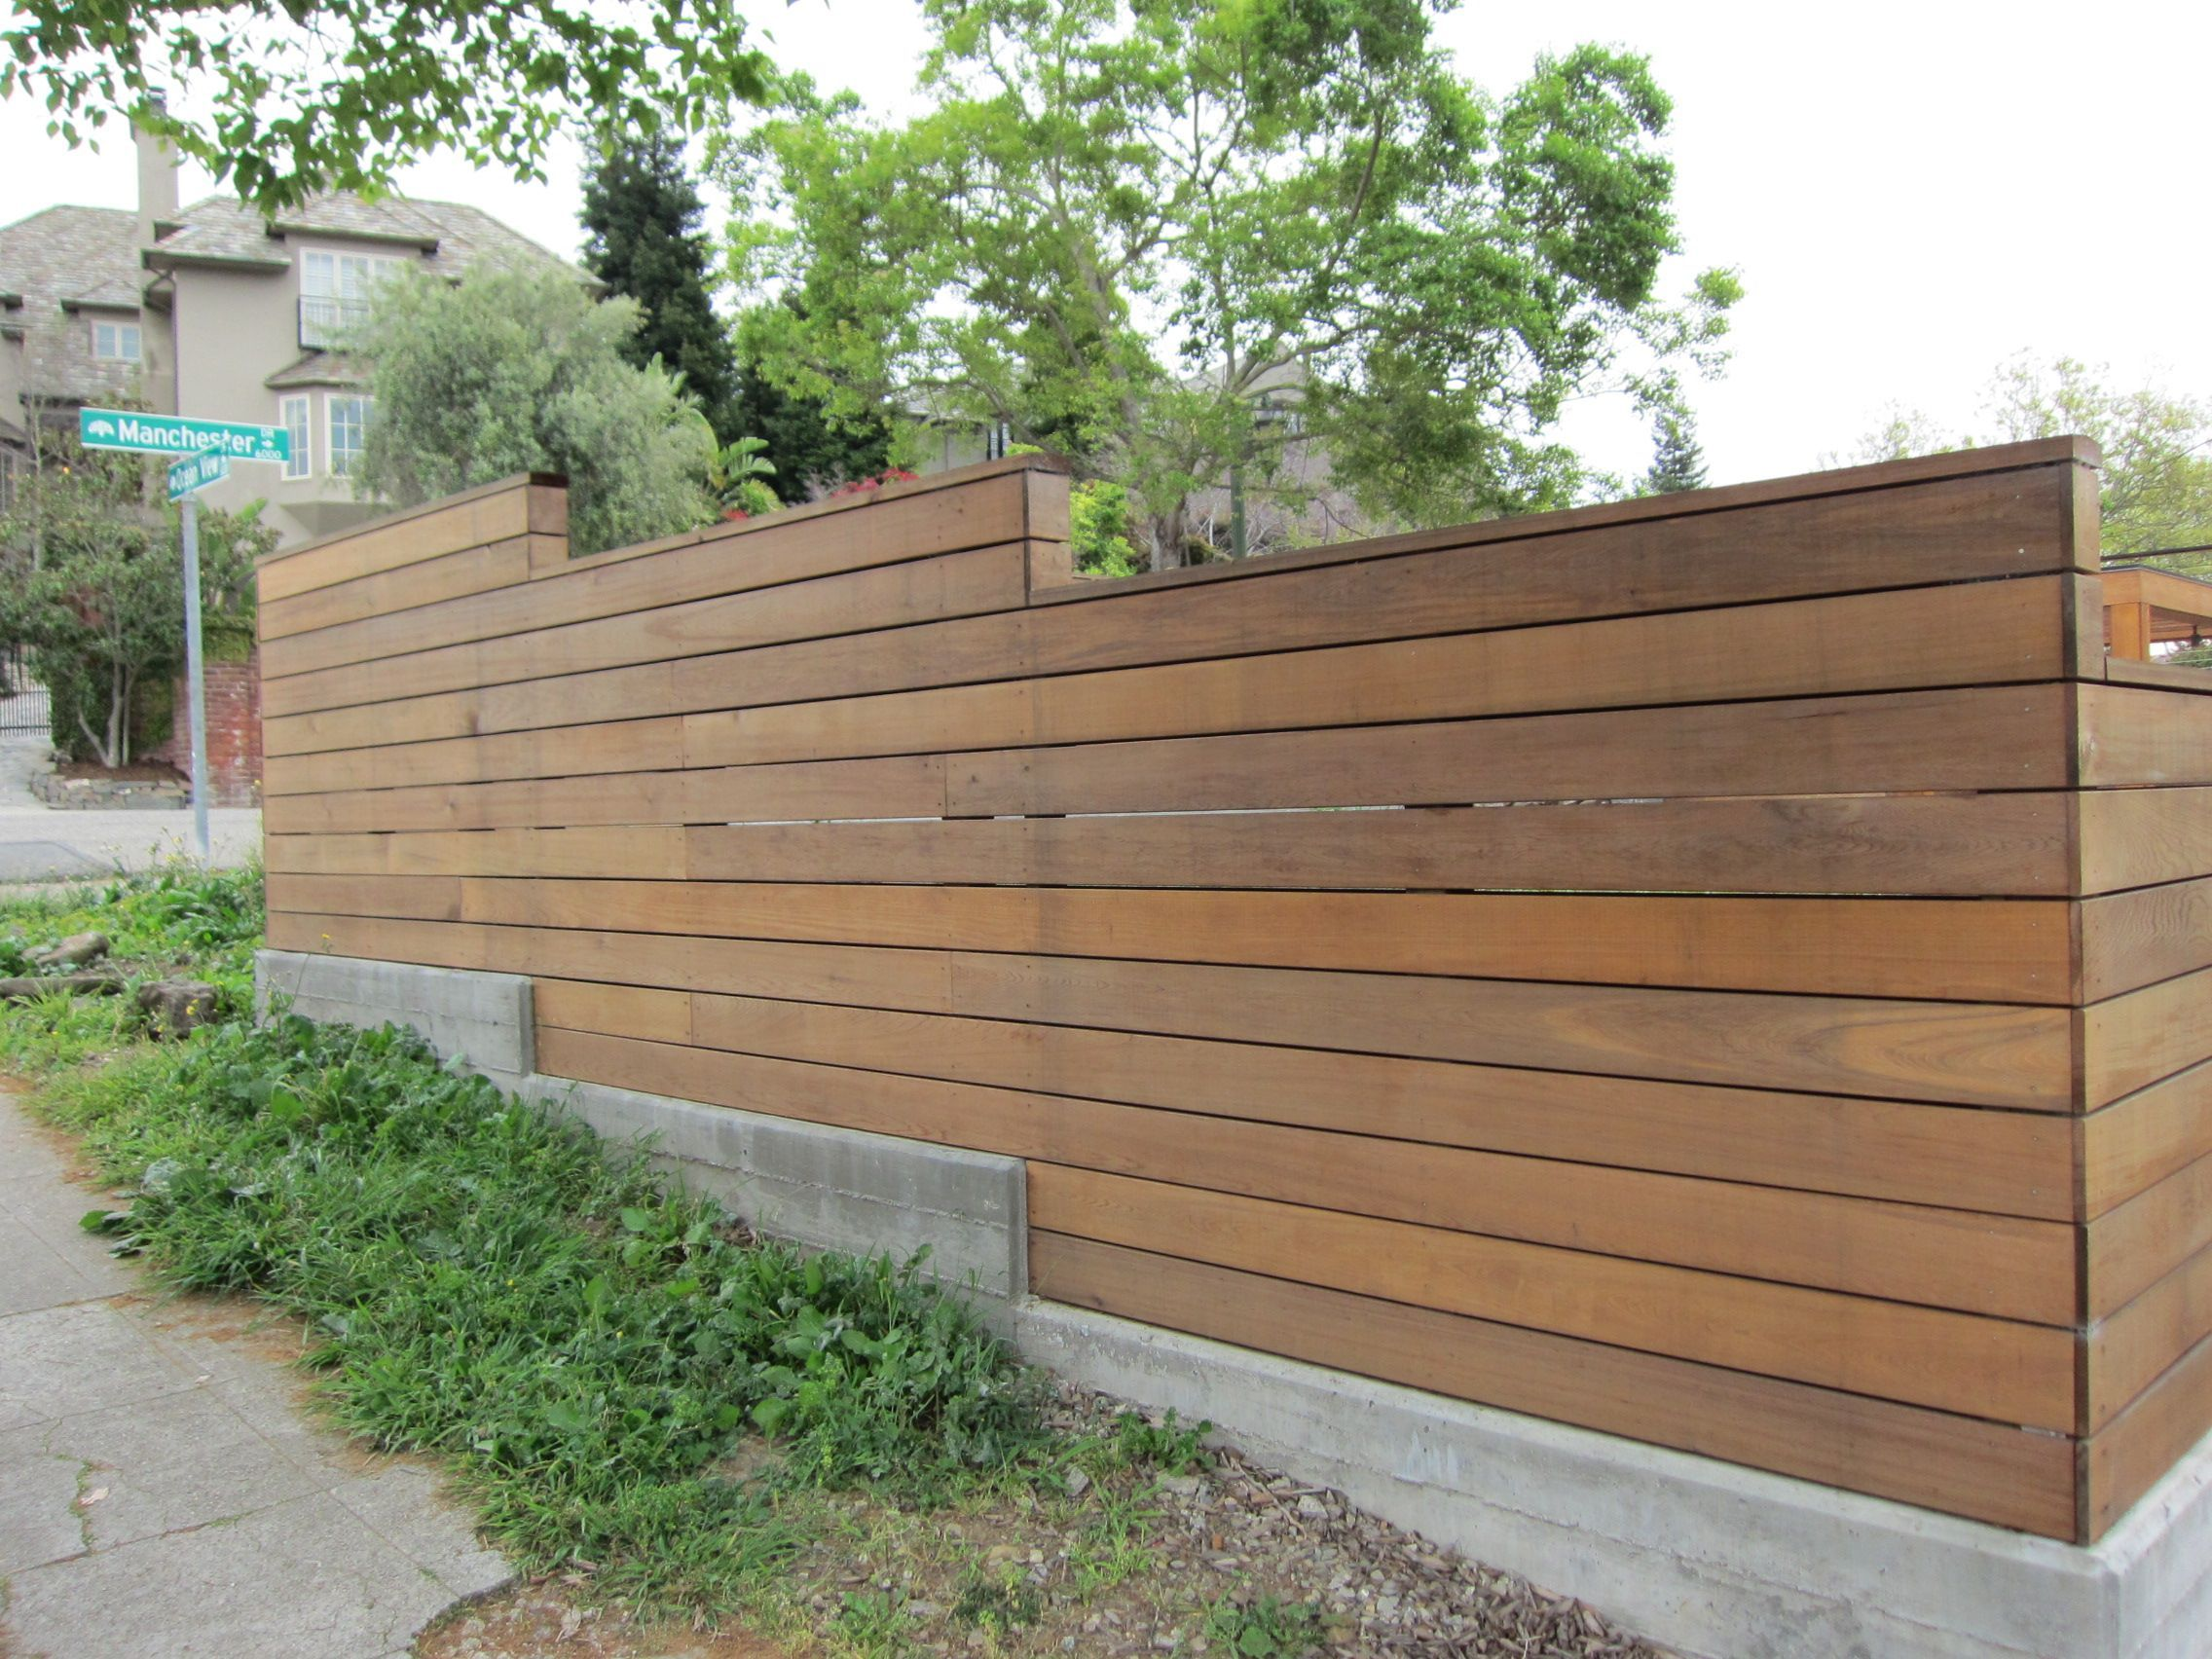 14 Exalted Wood Fence 2x4 Spacing Ideas In 2020 Backyard Fences